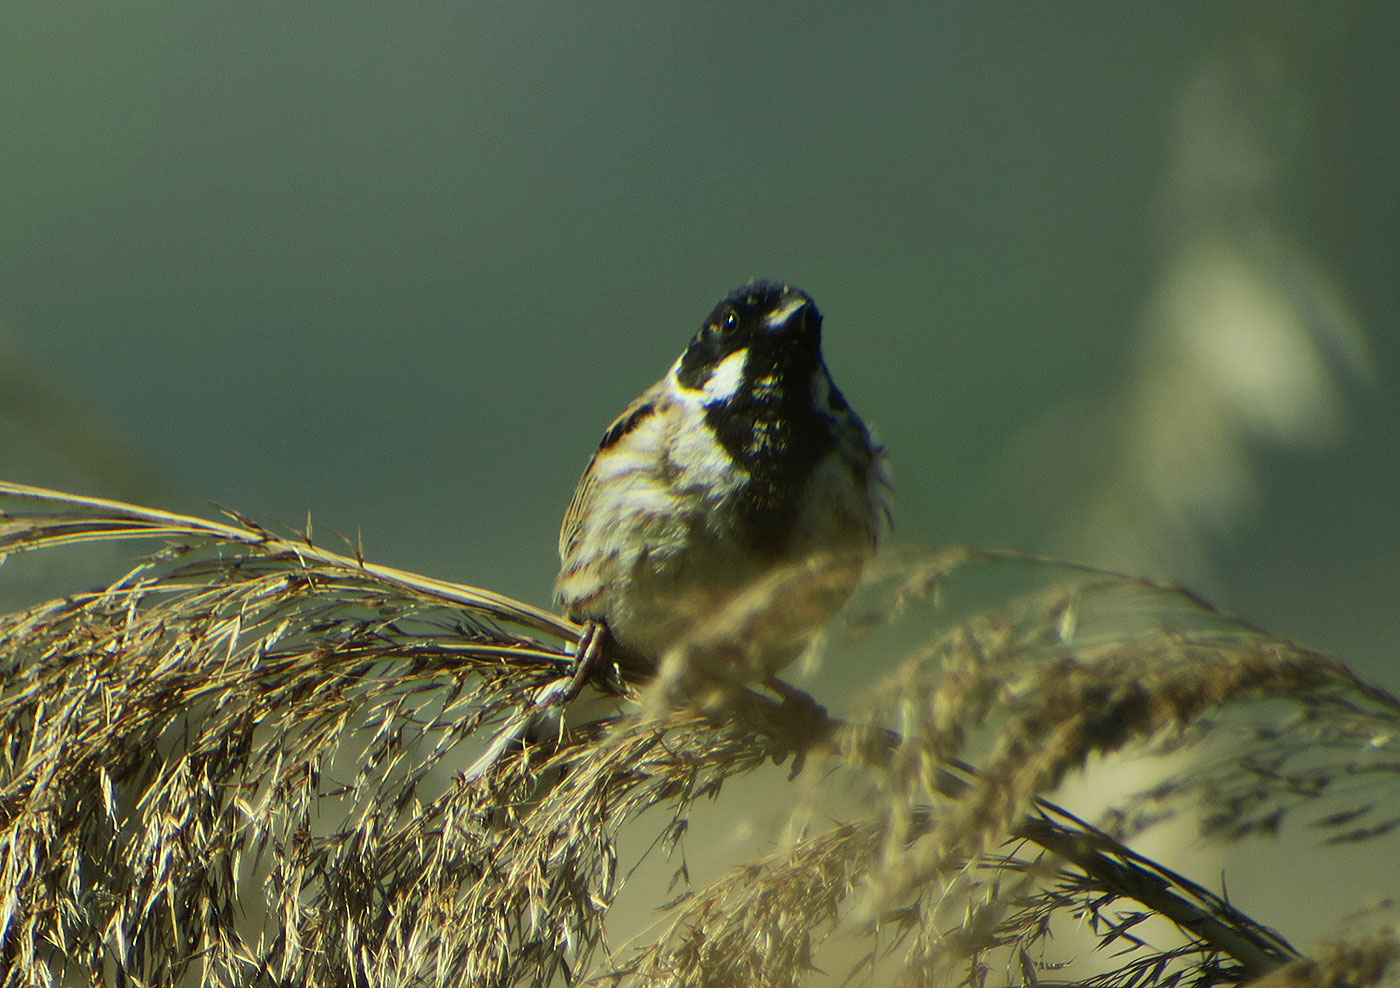 12_rohrammer_common-reed-bunting_ammersee_2019-05-01_9634